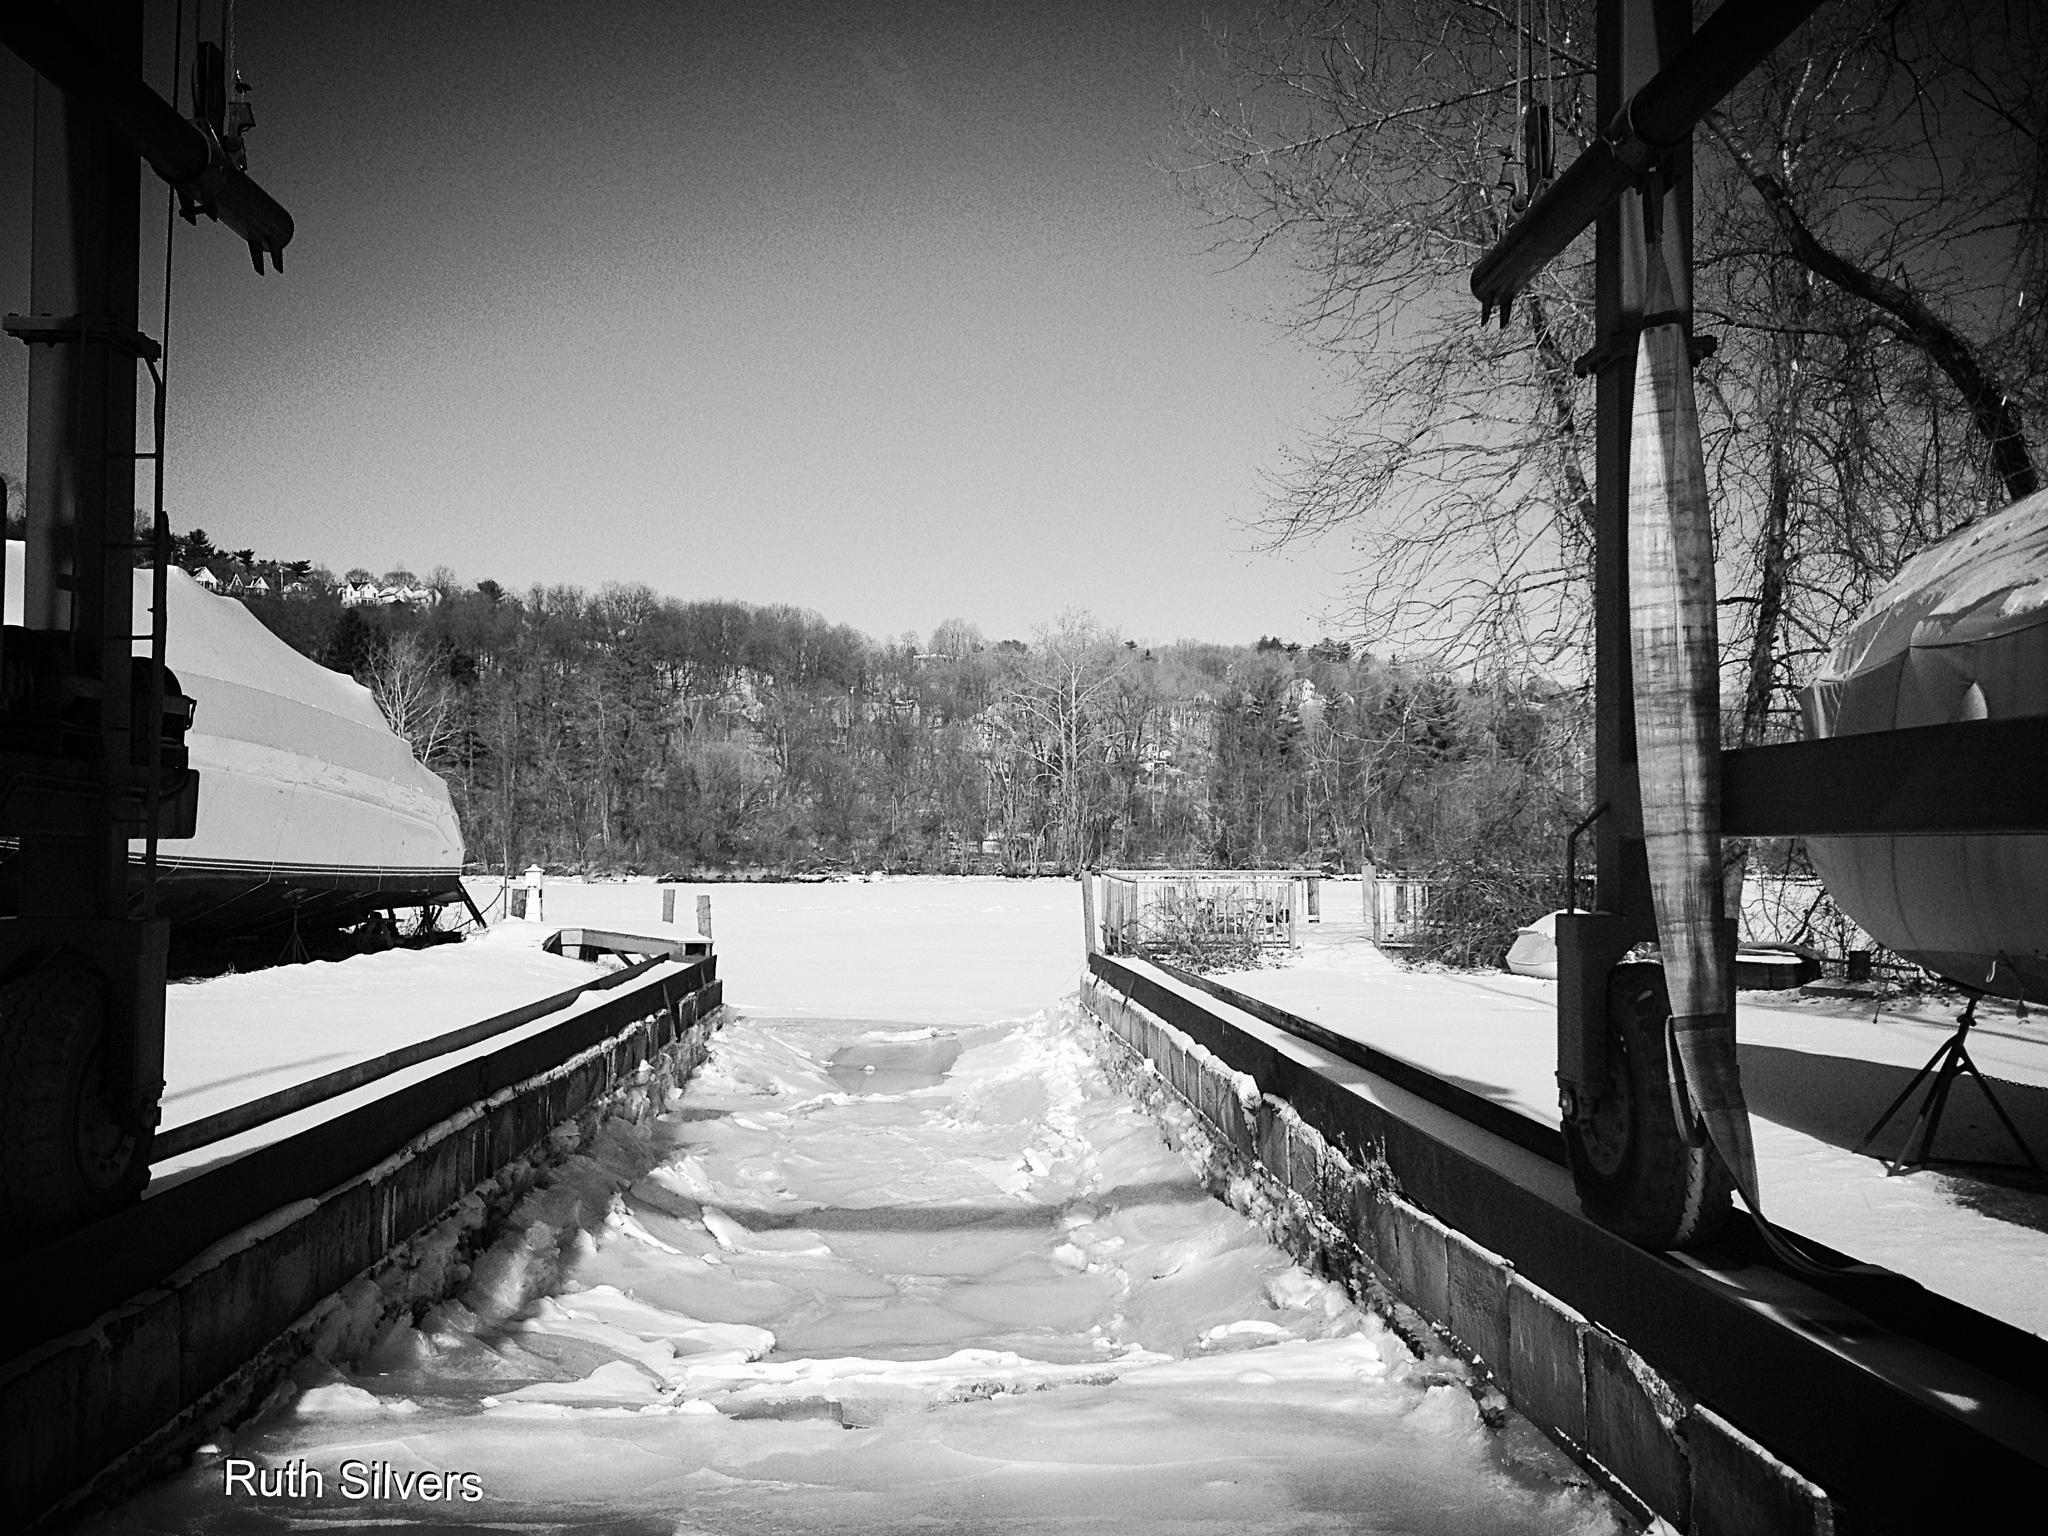 Winter at the boatyard by Ruth Silvers